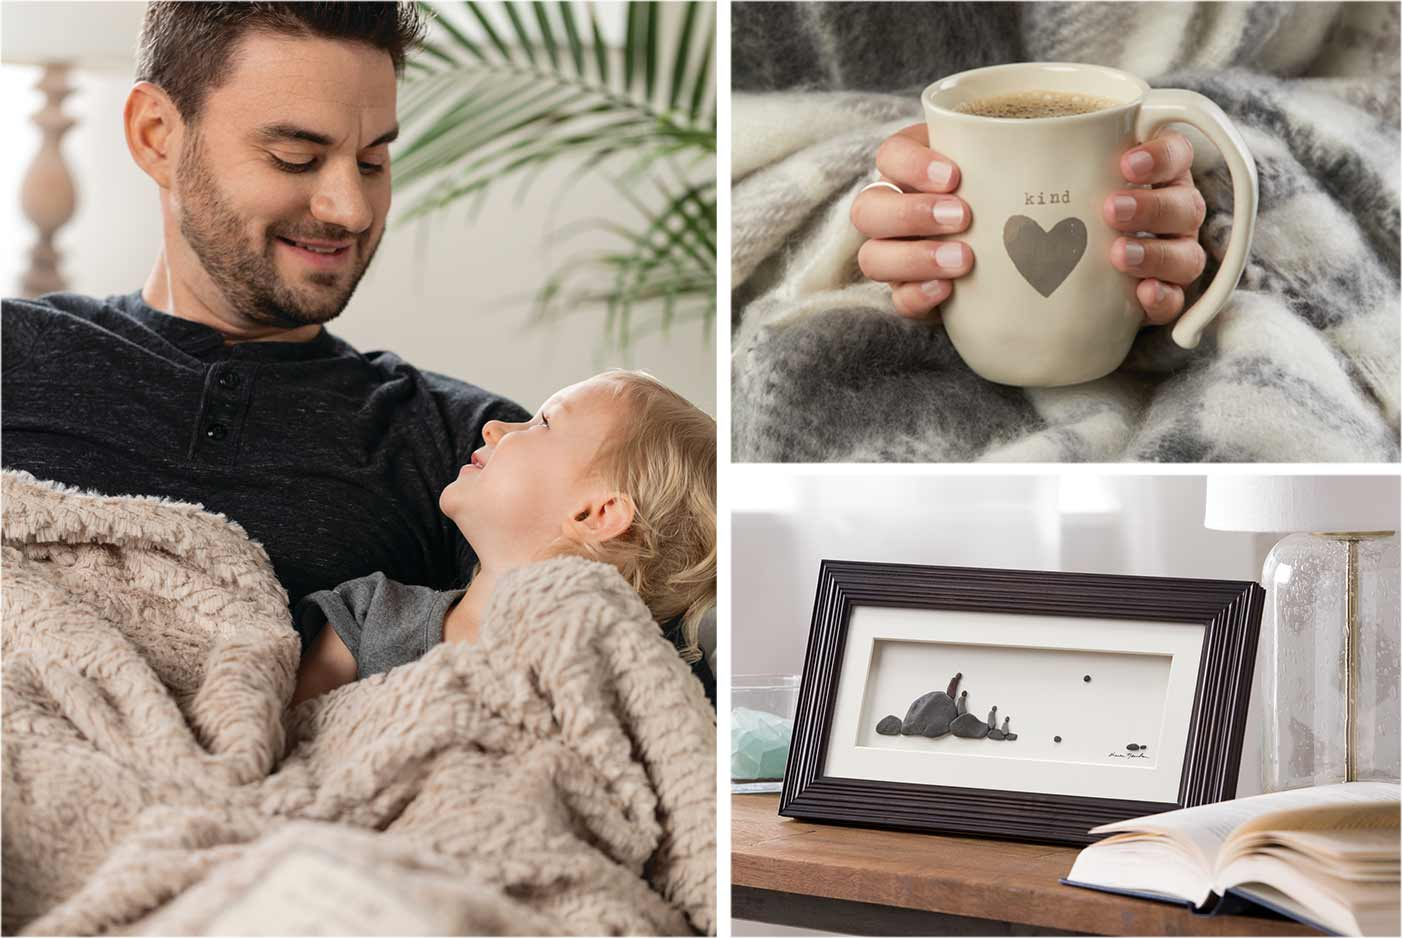 three photos on of a father and duaghter, another of a rocks in a picture frame making up a picture, a heart mug